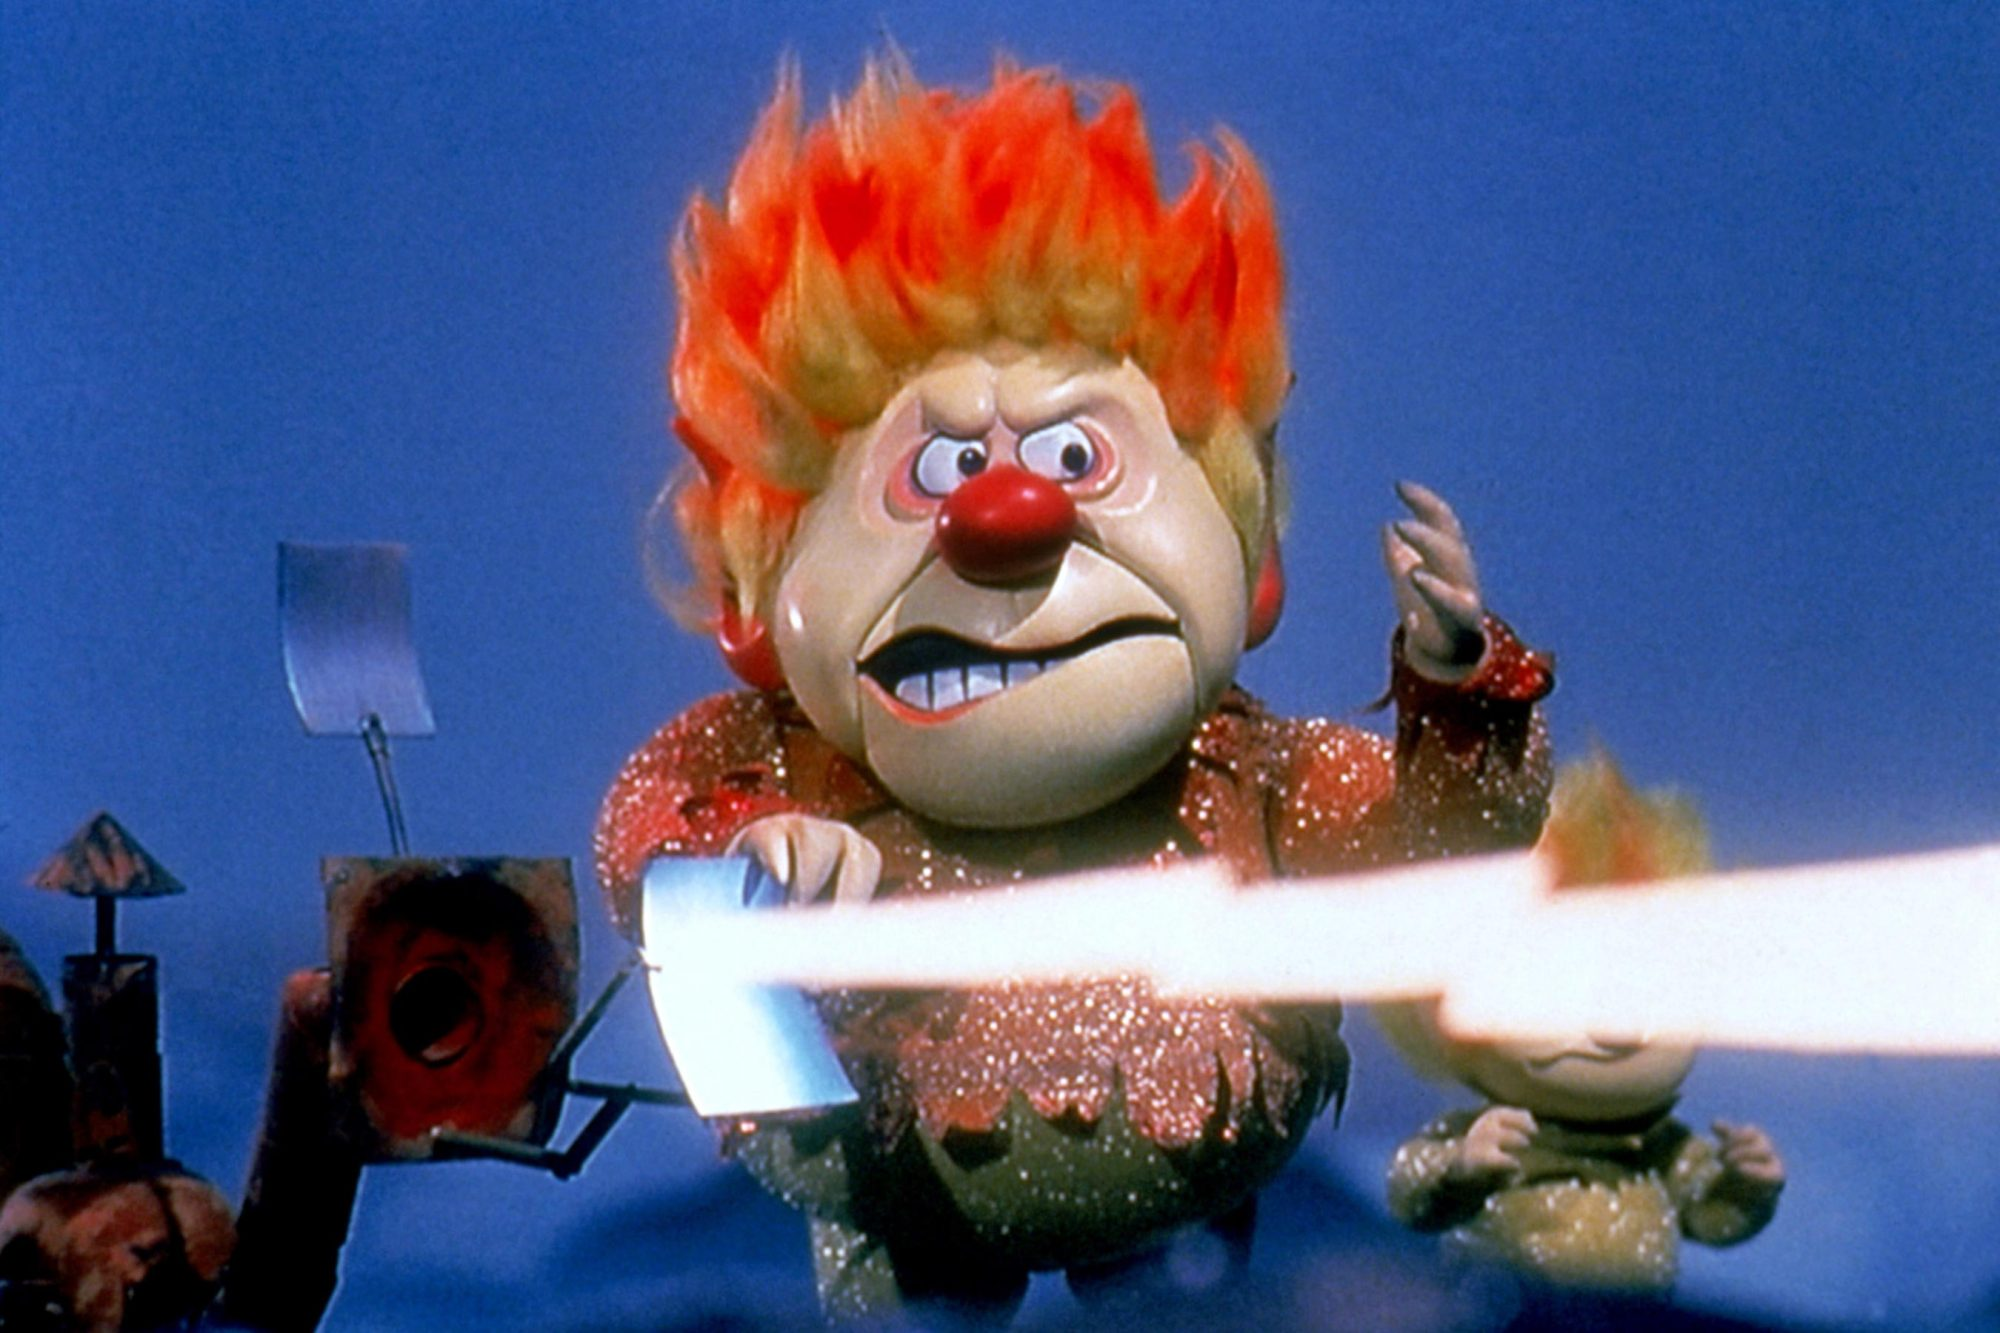 THE YEAR WITHOUT A SANTA CLAUS, Heat Miser, 1974.